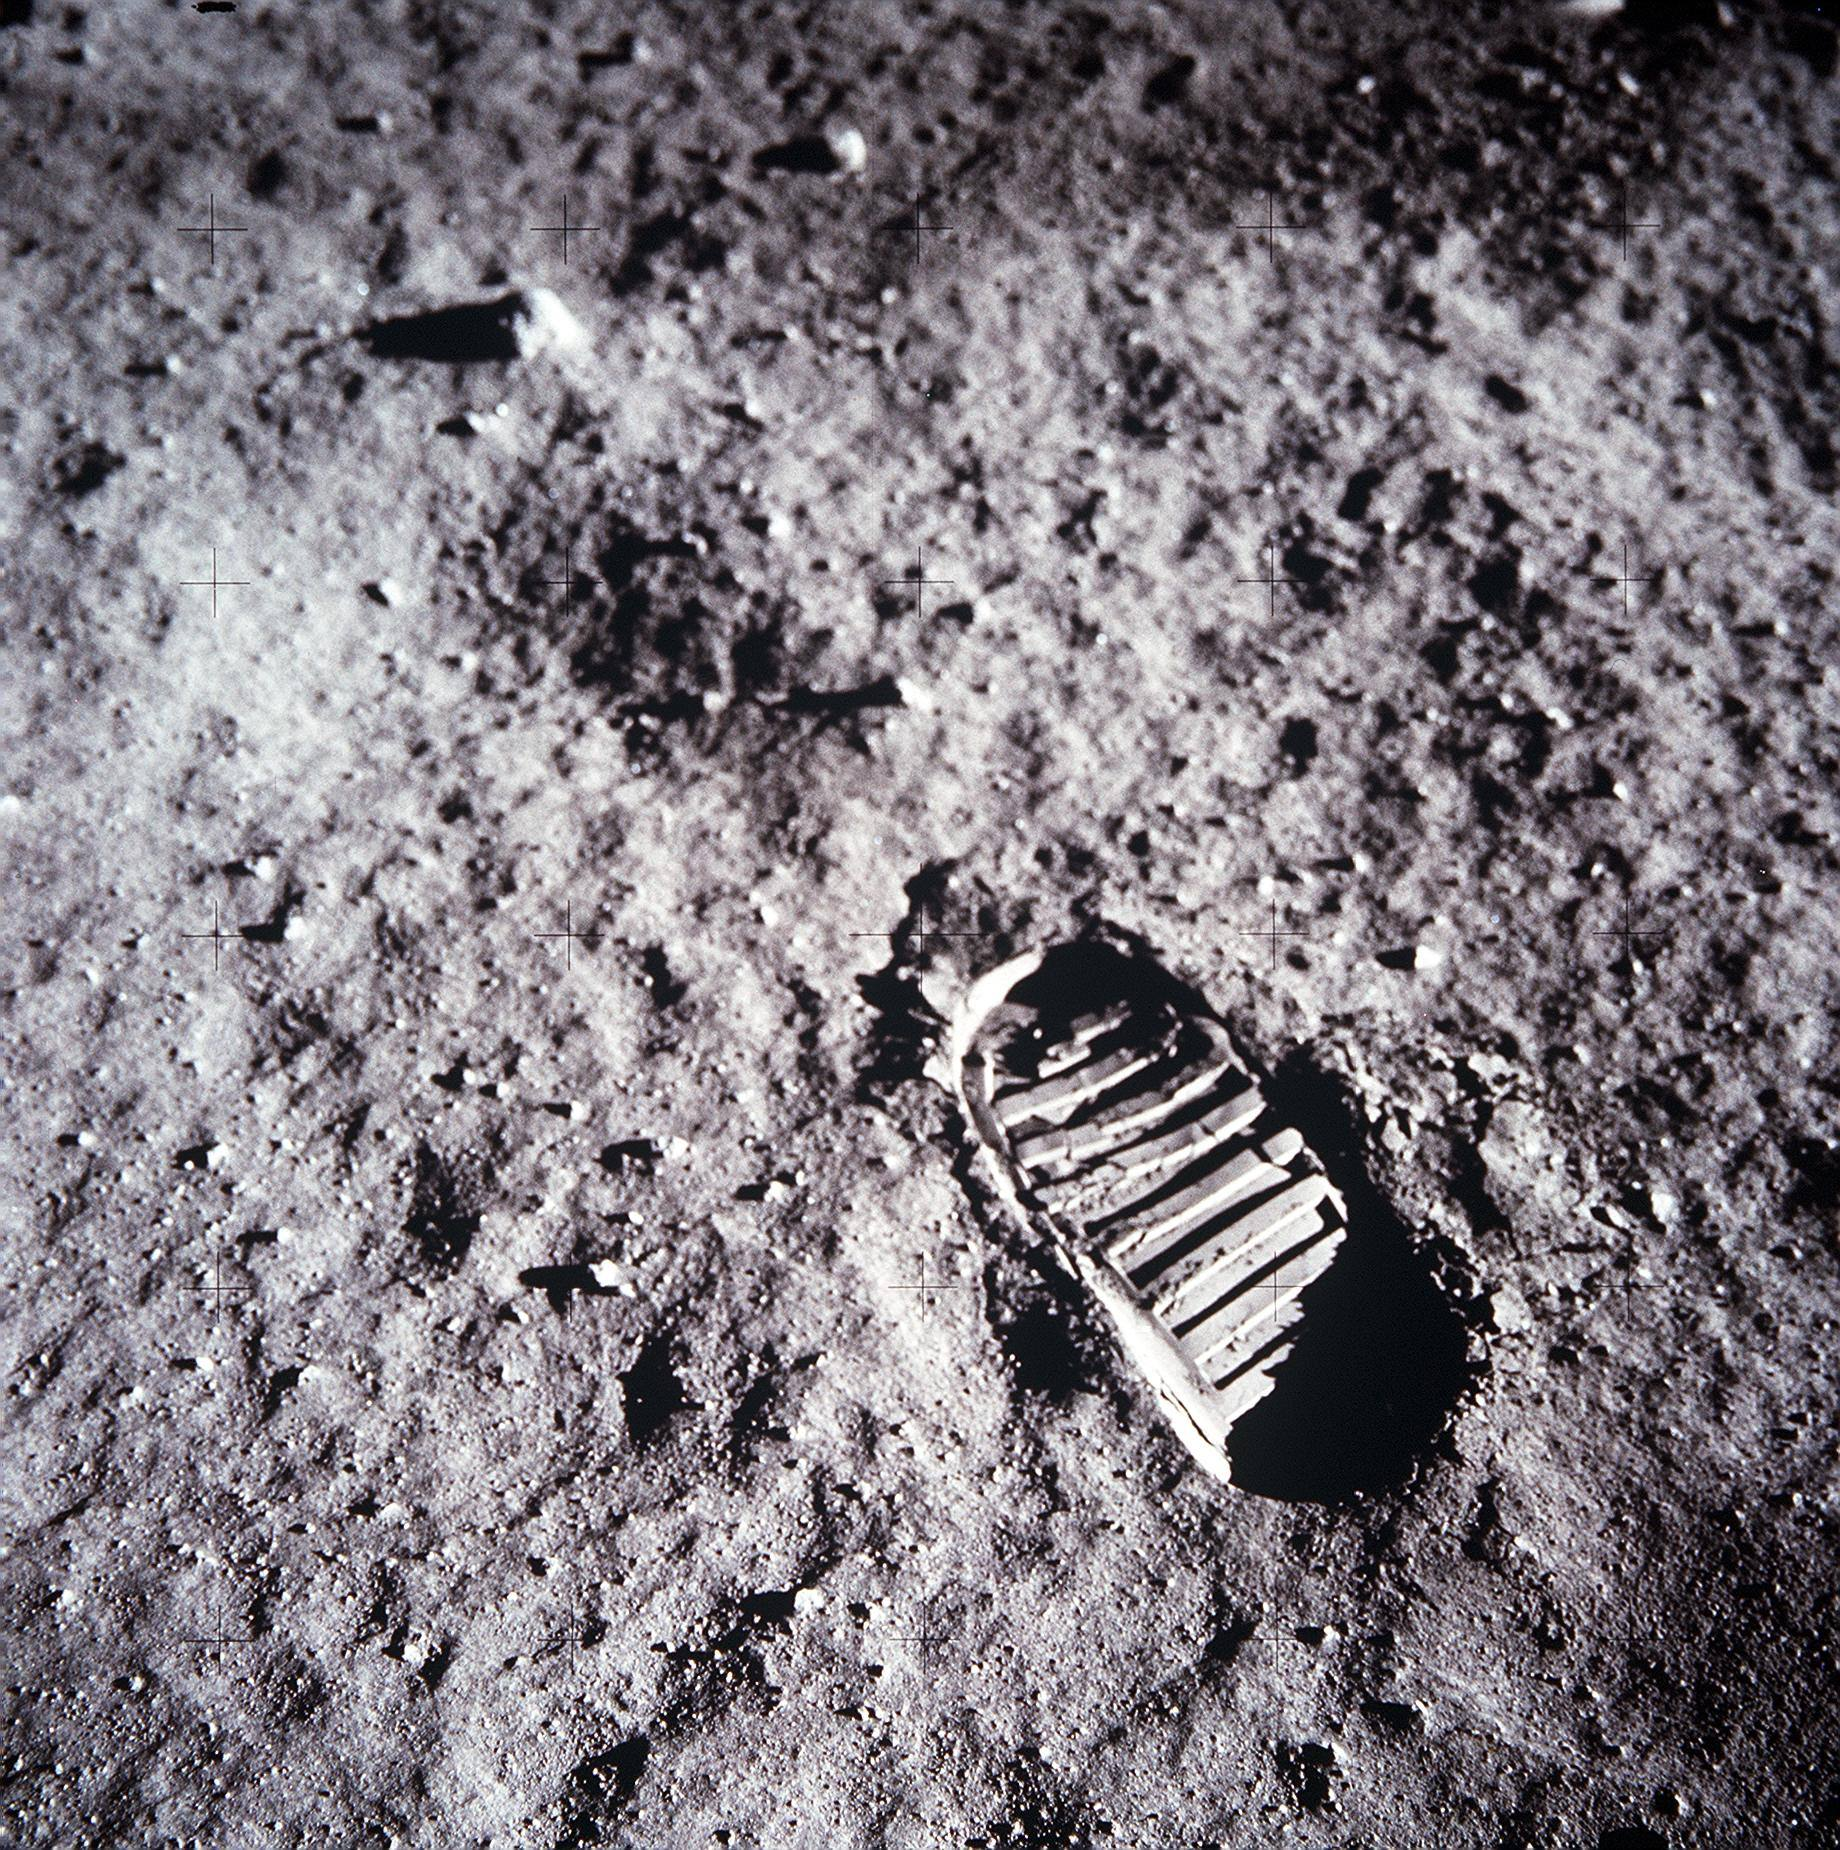 Apollo 11 astronaut Buzz Aldrin's bootprint in the lunar soil